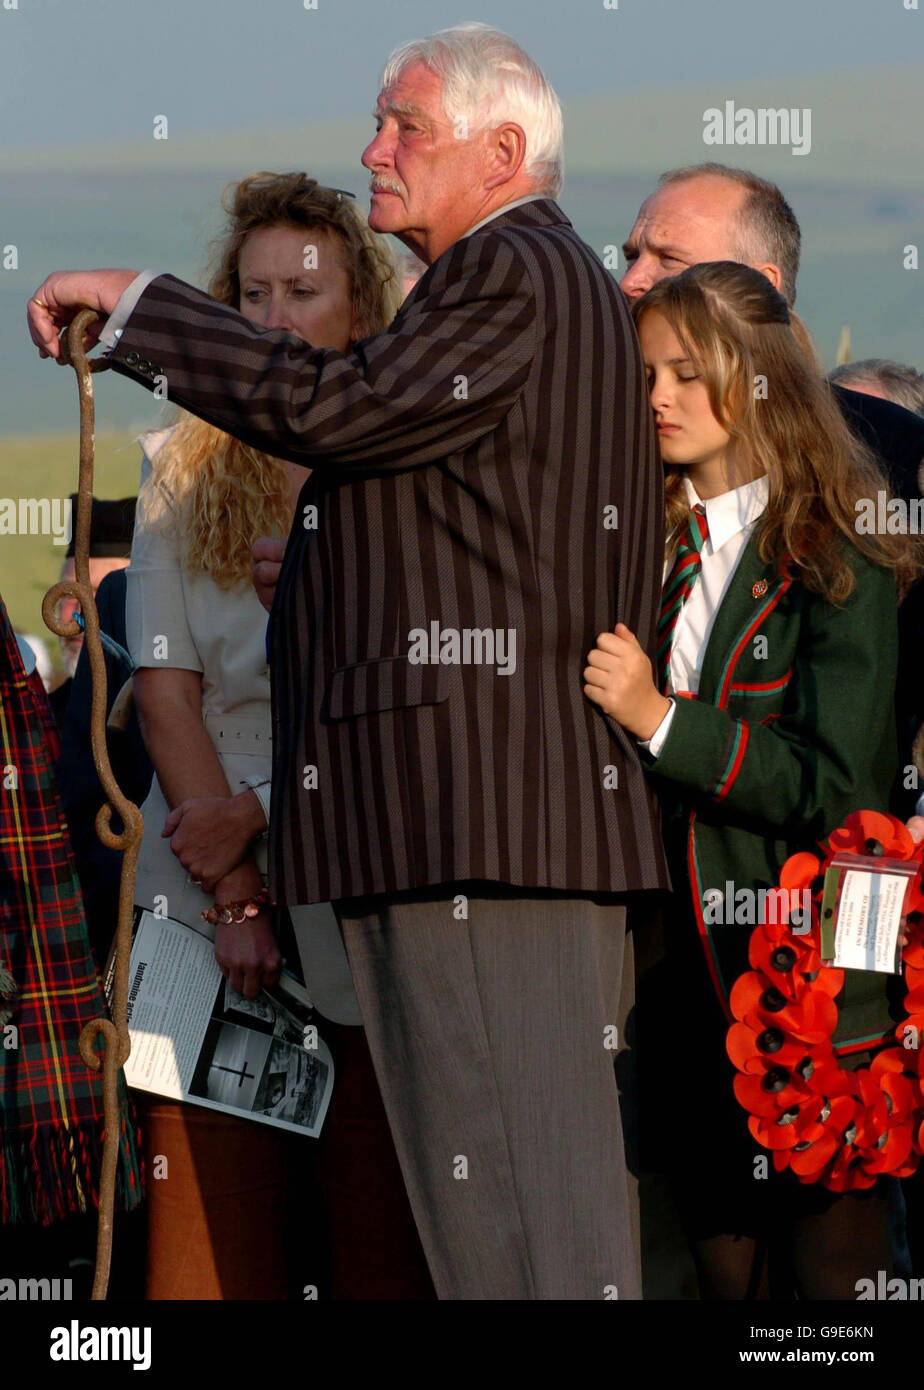 Somme Memorial 90 Years : Mick Fellows and his grandaughter during The Battle of the Somme memorial service at Lochnagar - Stock Image